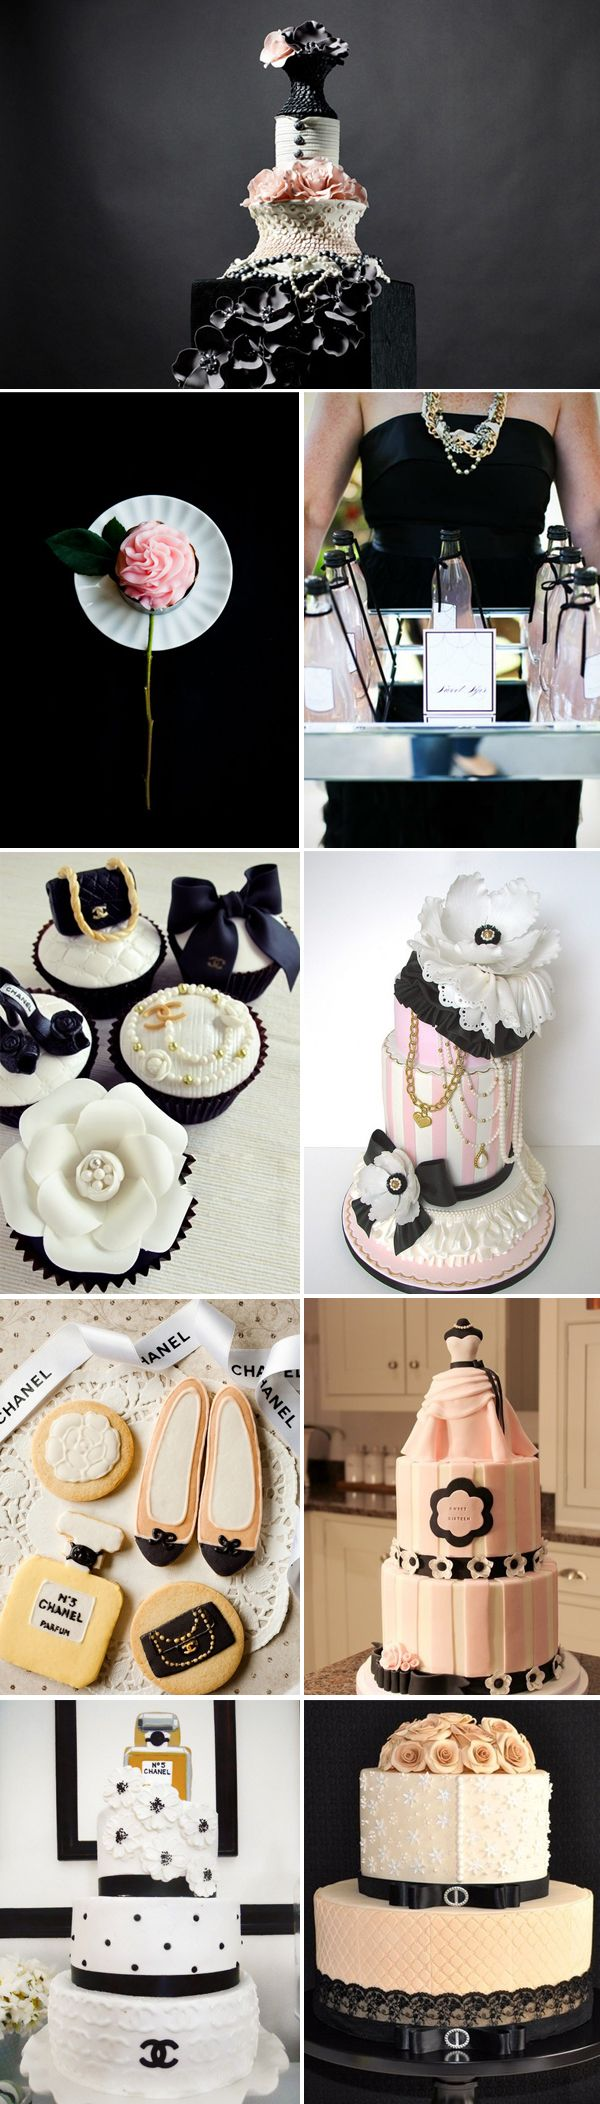 Chanel-Inspired Wedding Designs - sweets